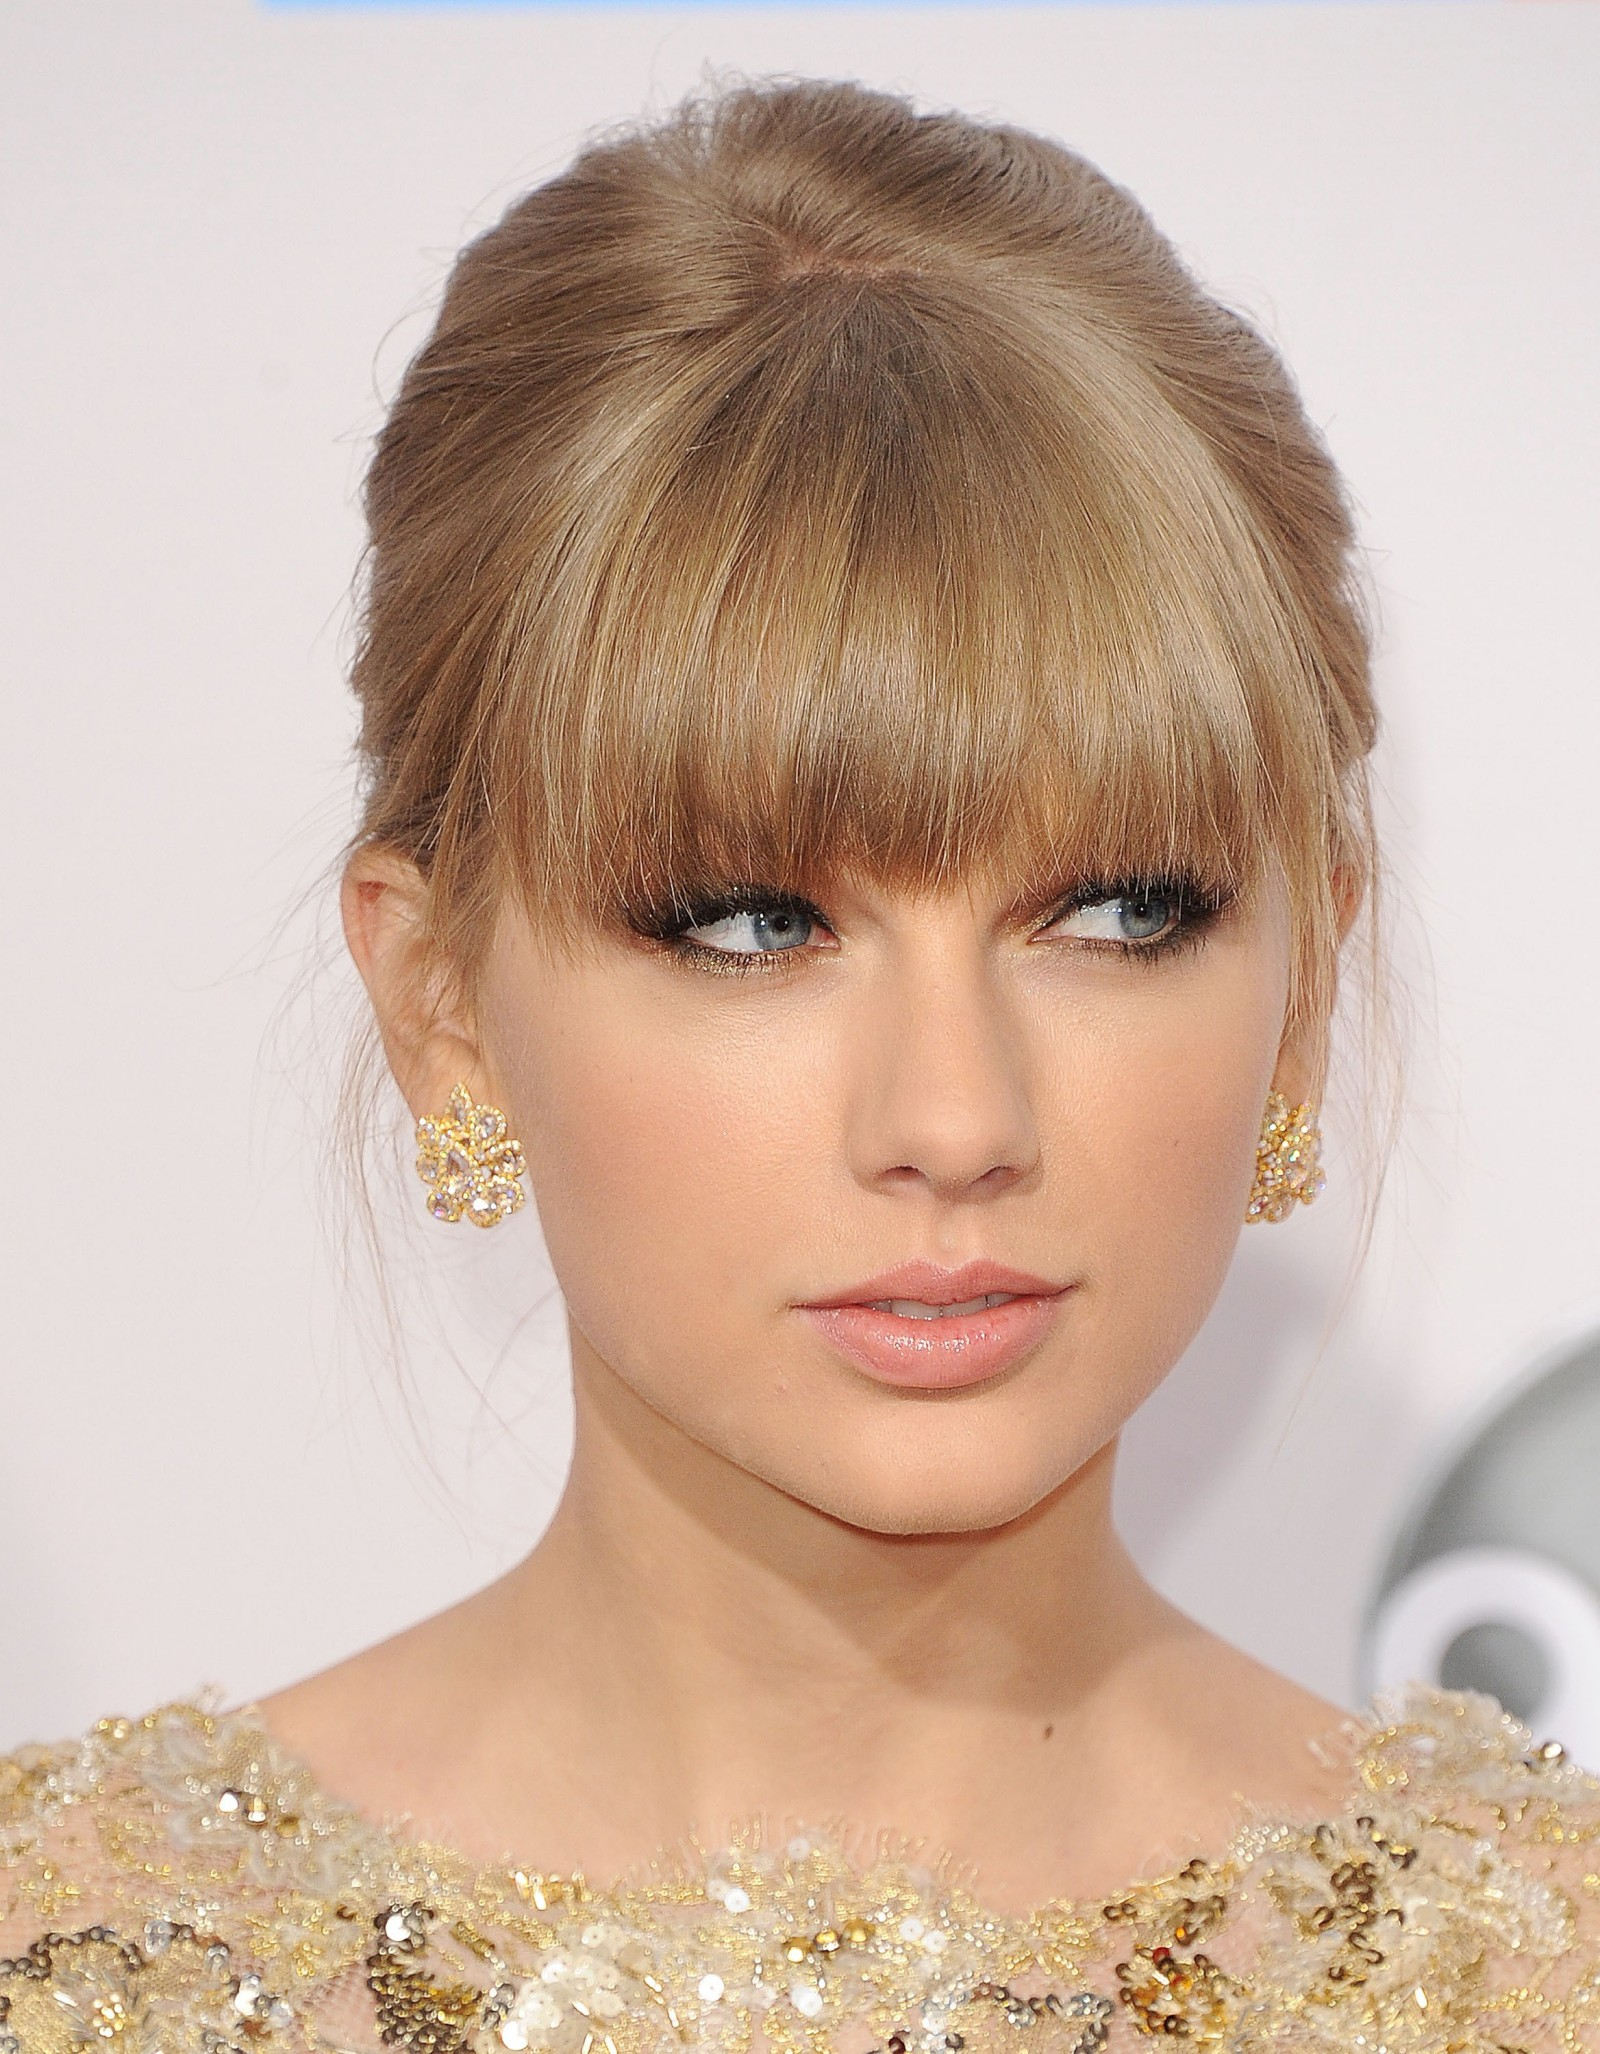 Taylor Swift coiffure 2012